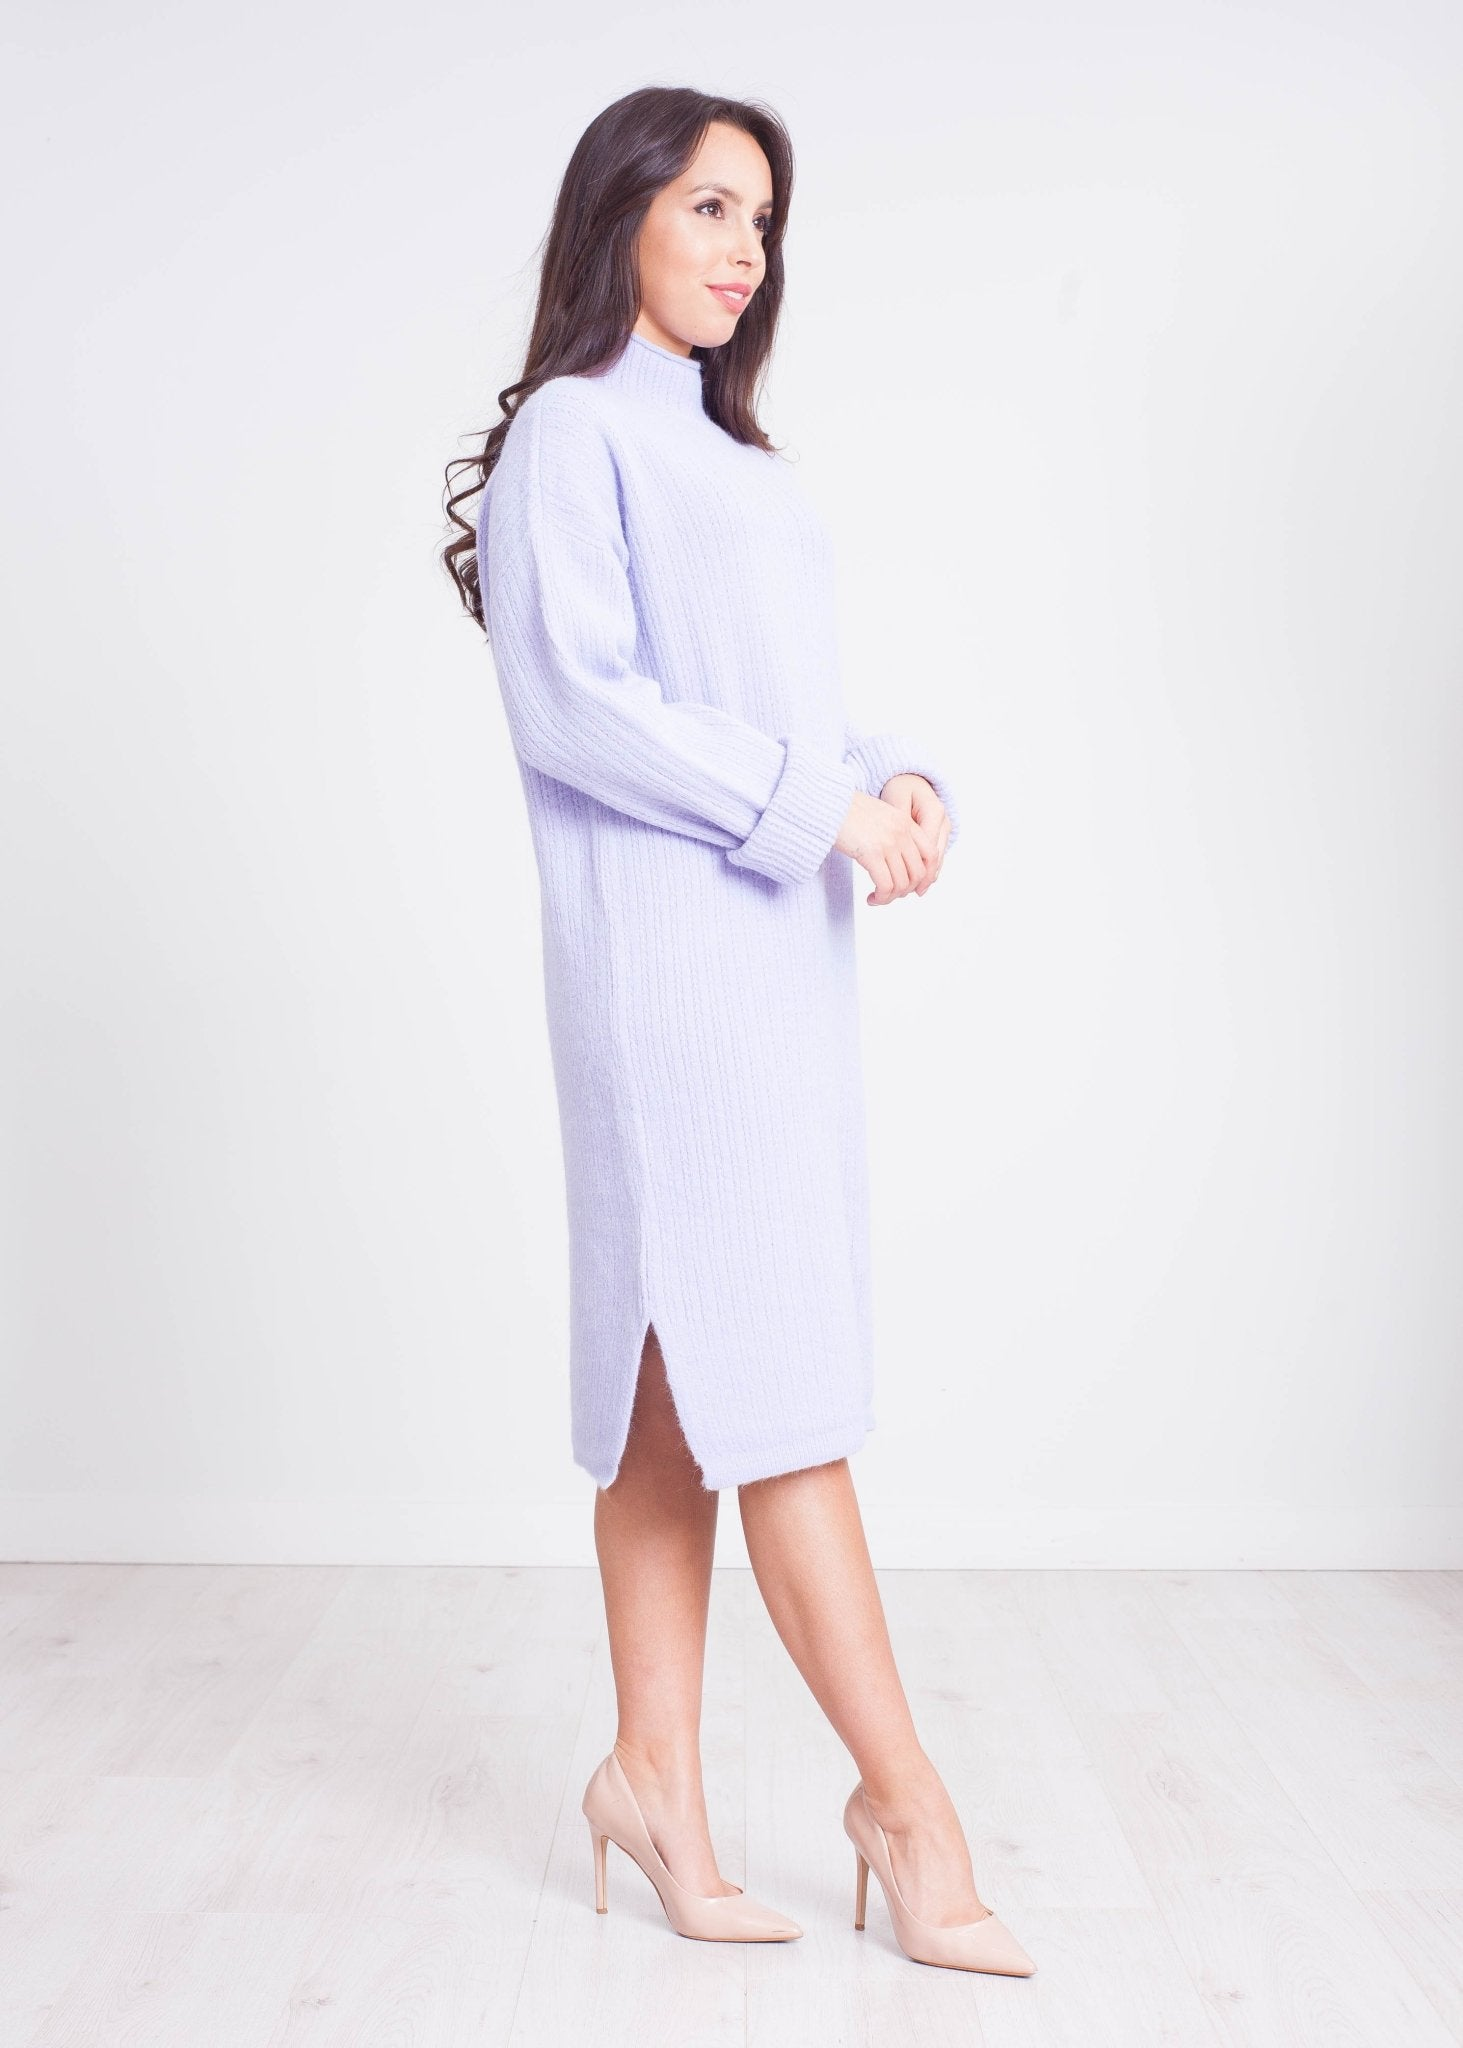 Elsa Knit Dress in Lilac - The Walk in Wardrobe